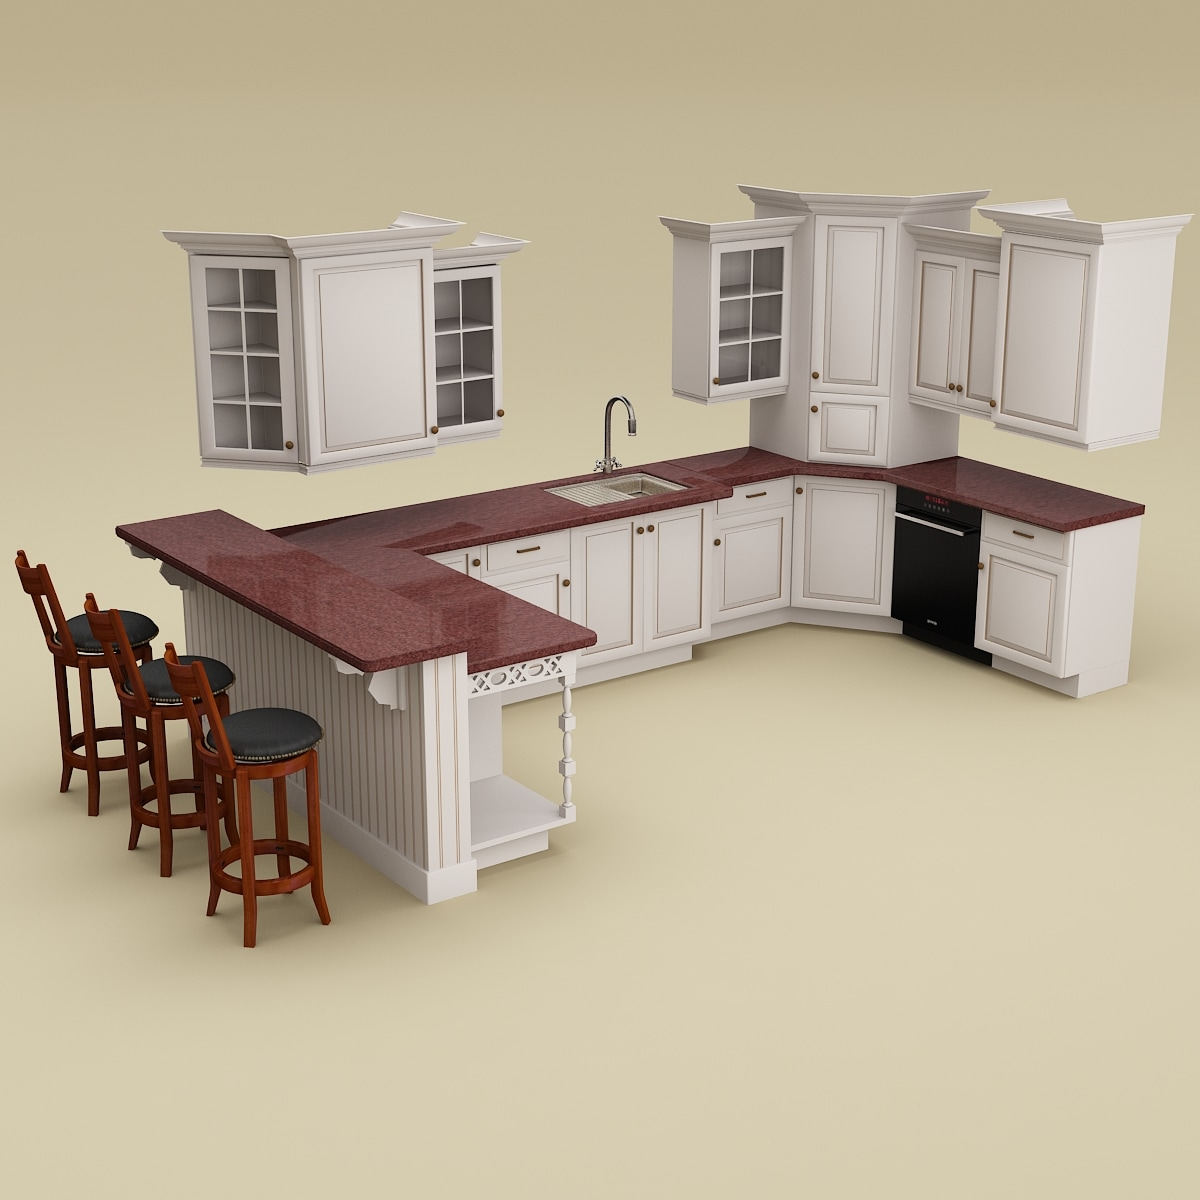 Kitchen_V19_001.jpg